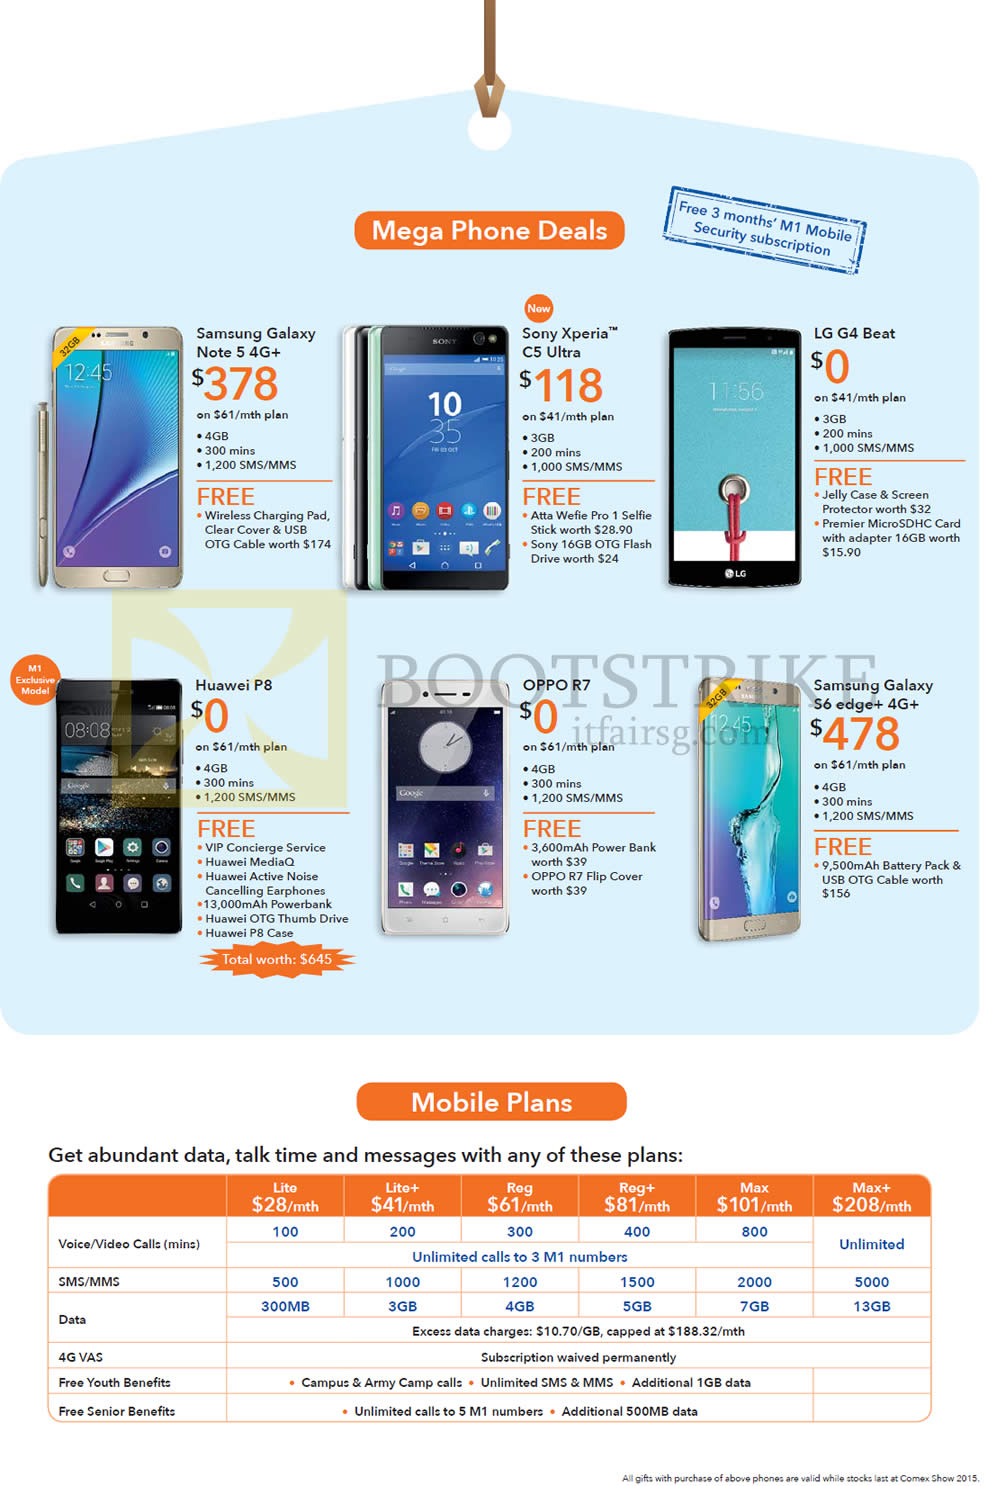 samsung galaxy s6 edge price list. comex 2015 price list image brochure of m1 mobile, samsung galaxy note 5, sony. « s6 edge s